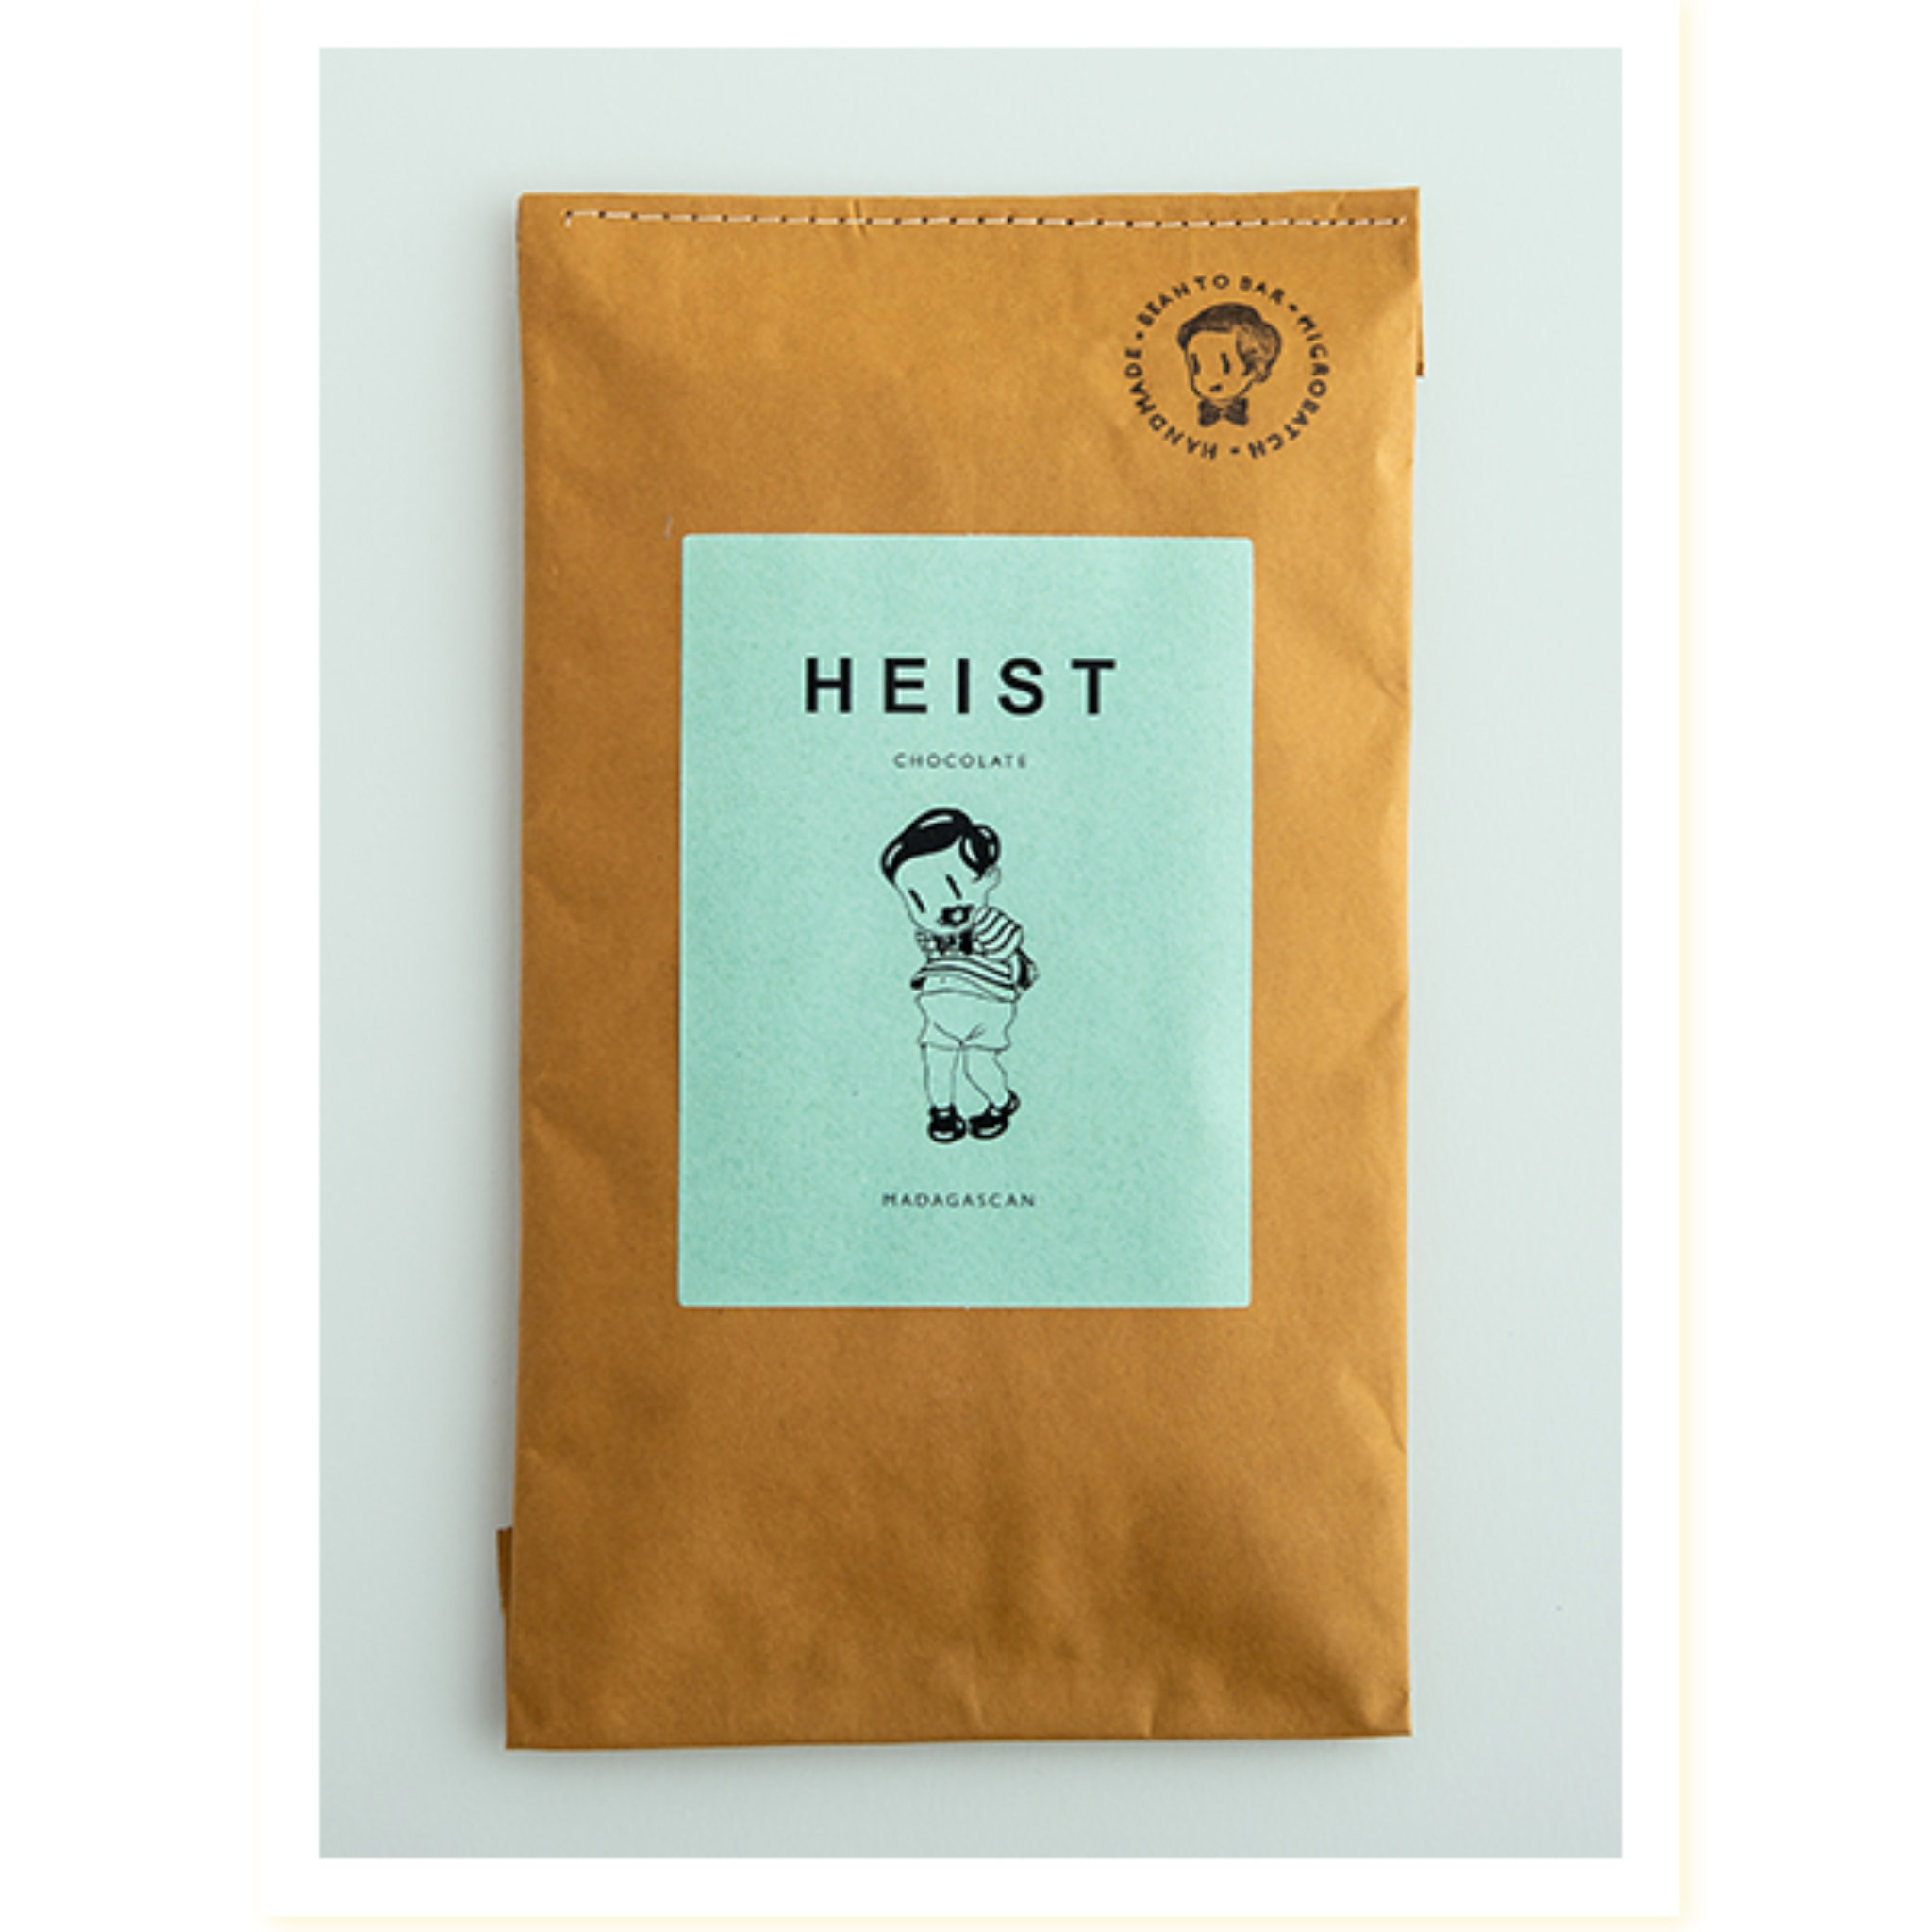 Heist Chocolate- Madagascan